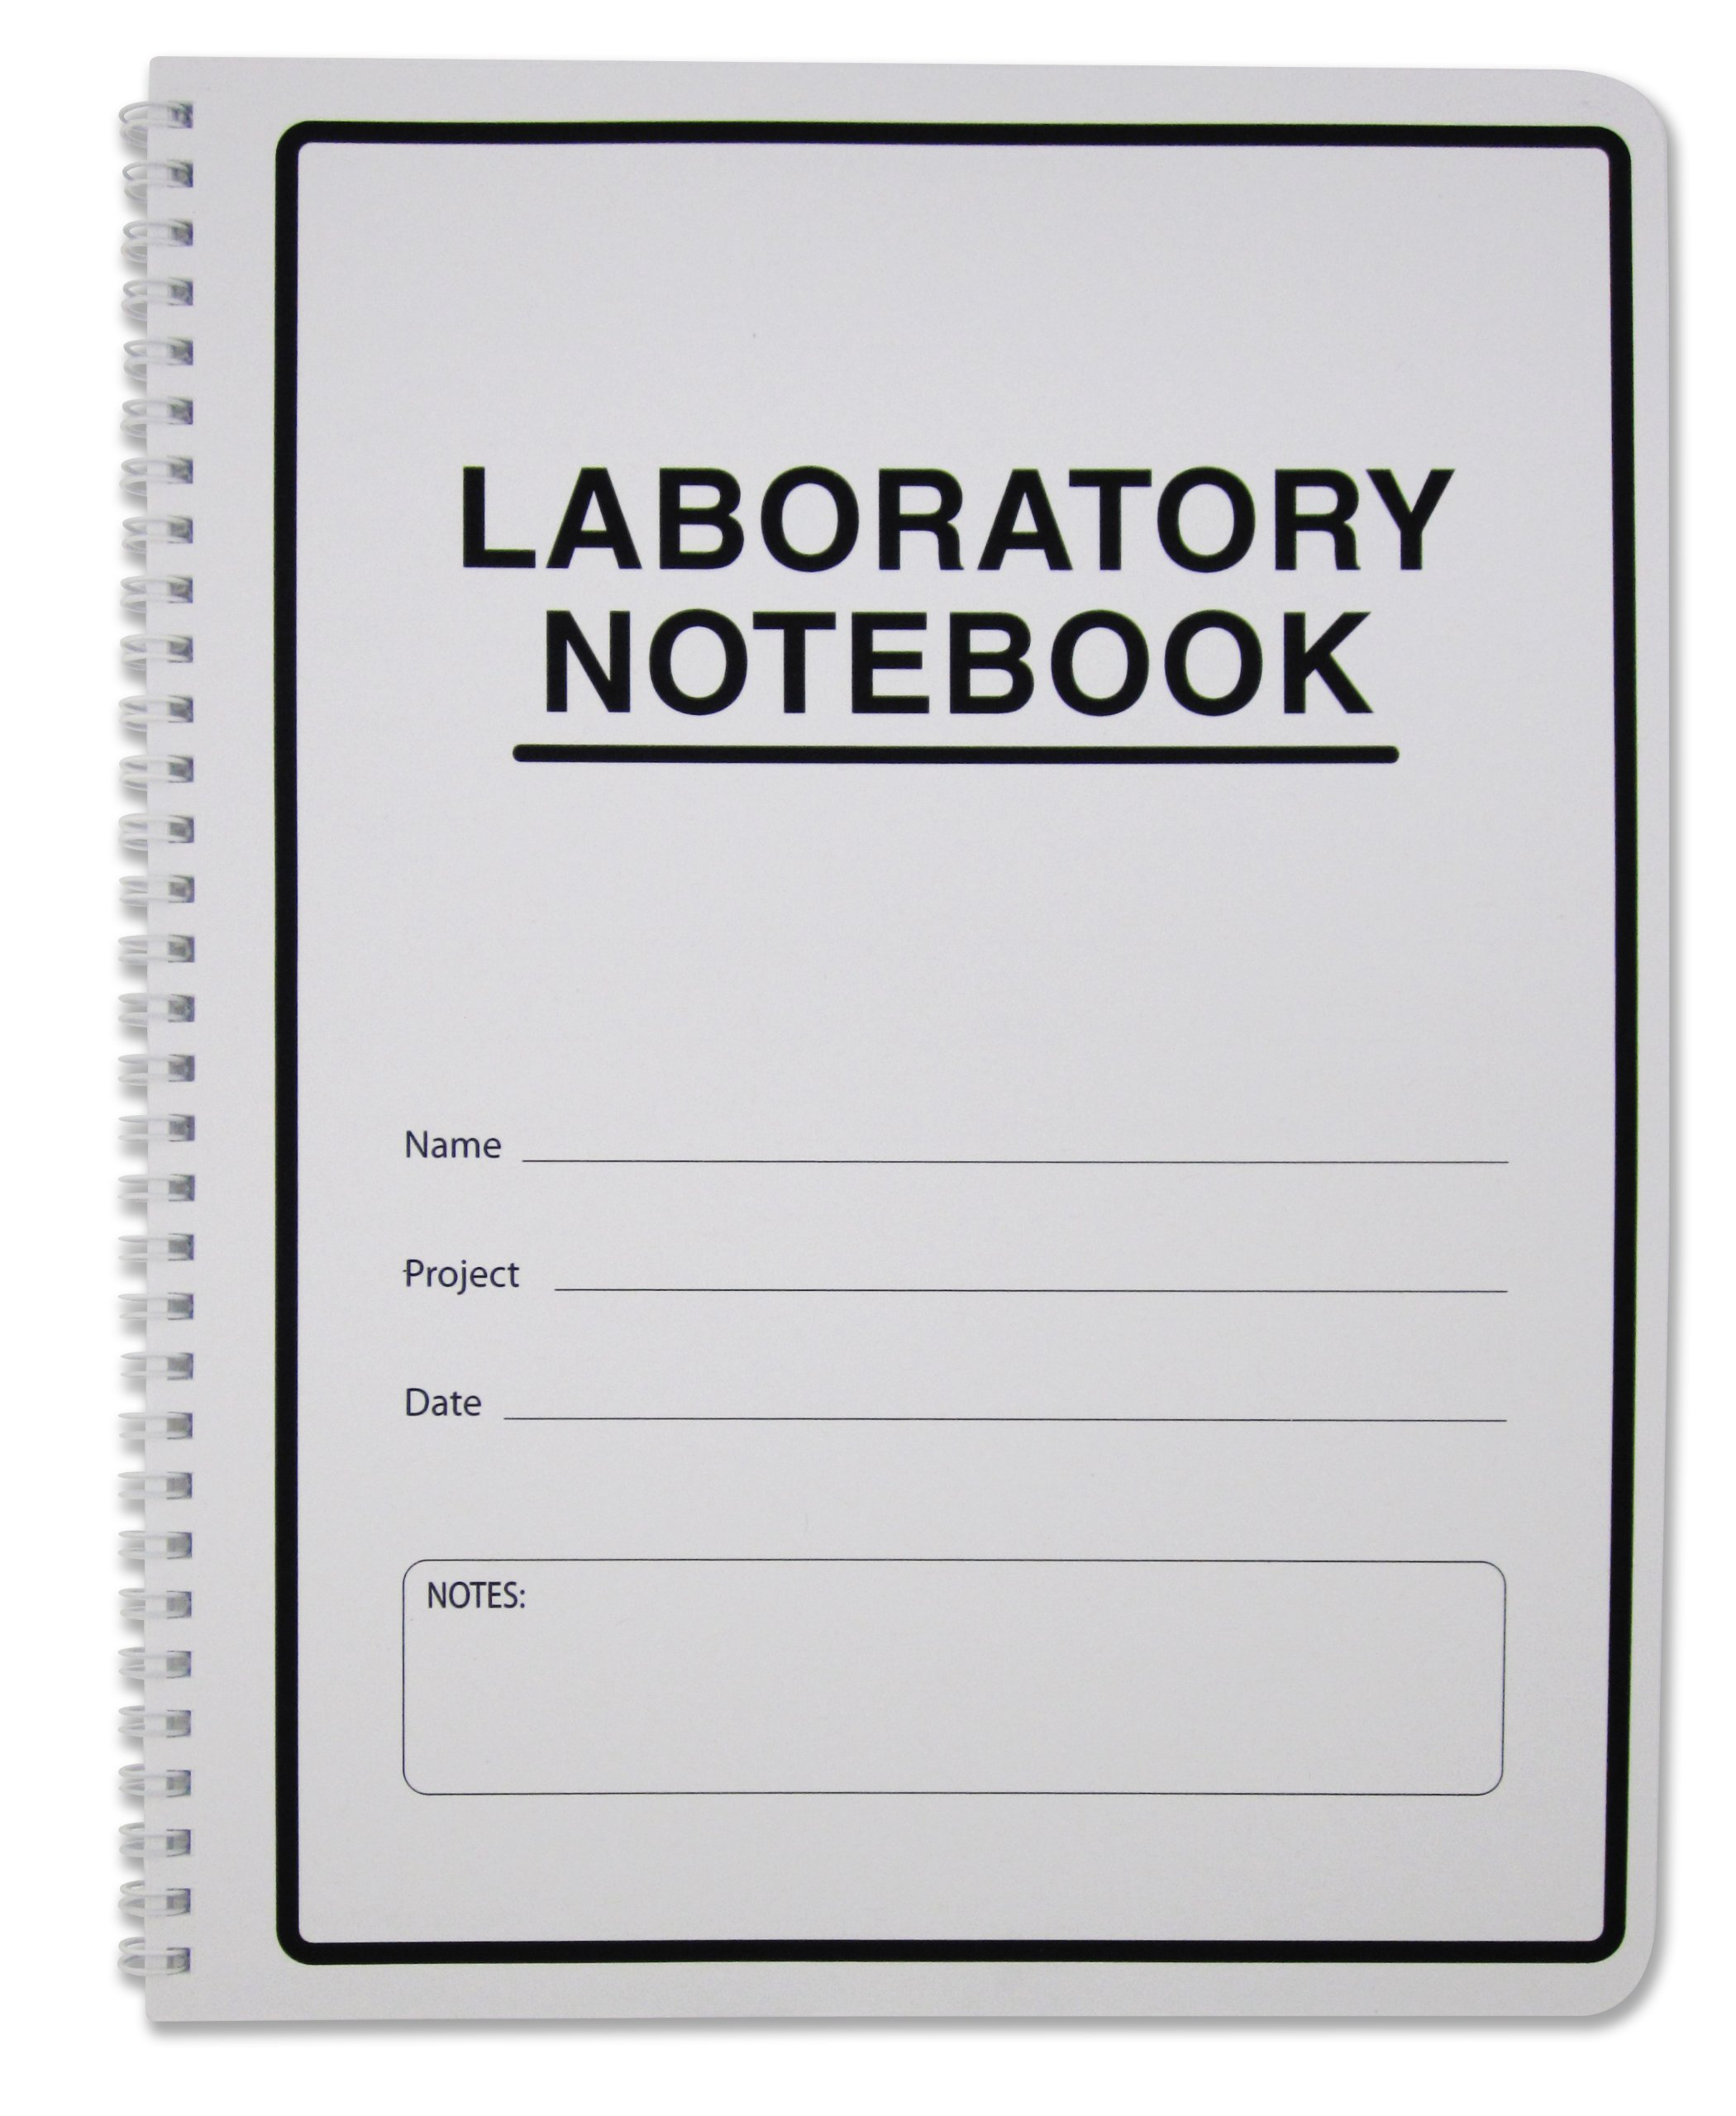 BookFactory Carbonless Lab Notebook/Laboratory Duplicator Book (Scientific Grid Format) - 8.5'' x 11''. 100 Sets of Pages, 200 Sheets Total [Wire-O Bound] (LAB-100-WTG-D)